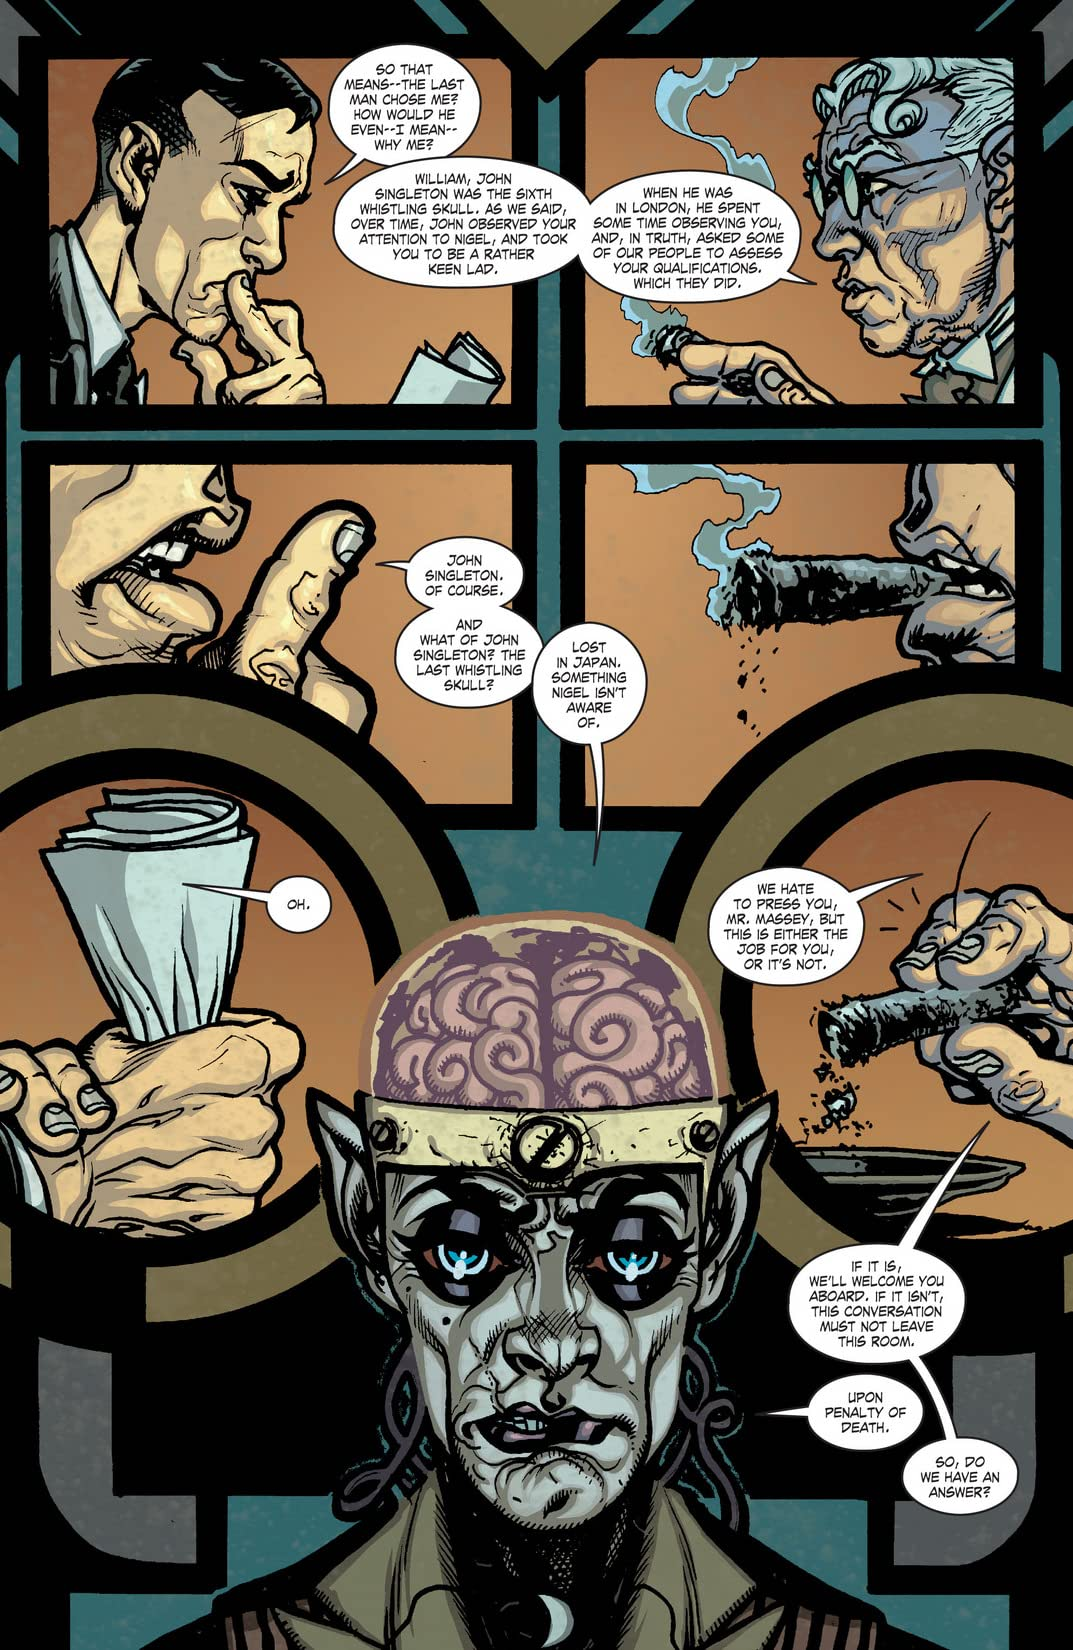 JSA Liberty Files: The Whistling Skull (2012) #6 (of 6)